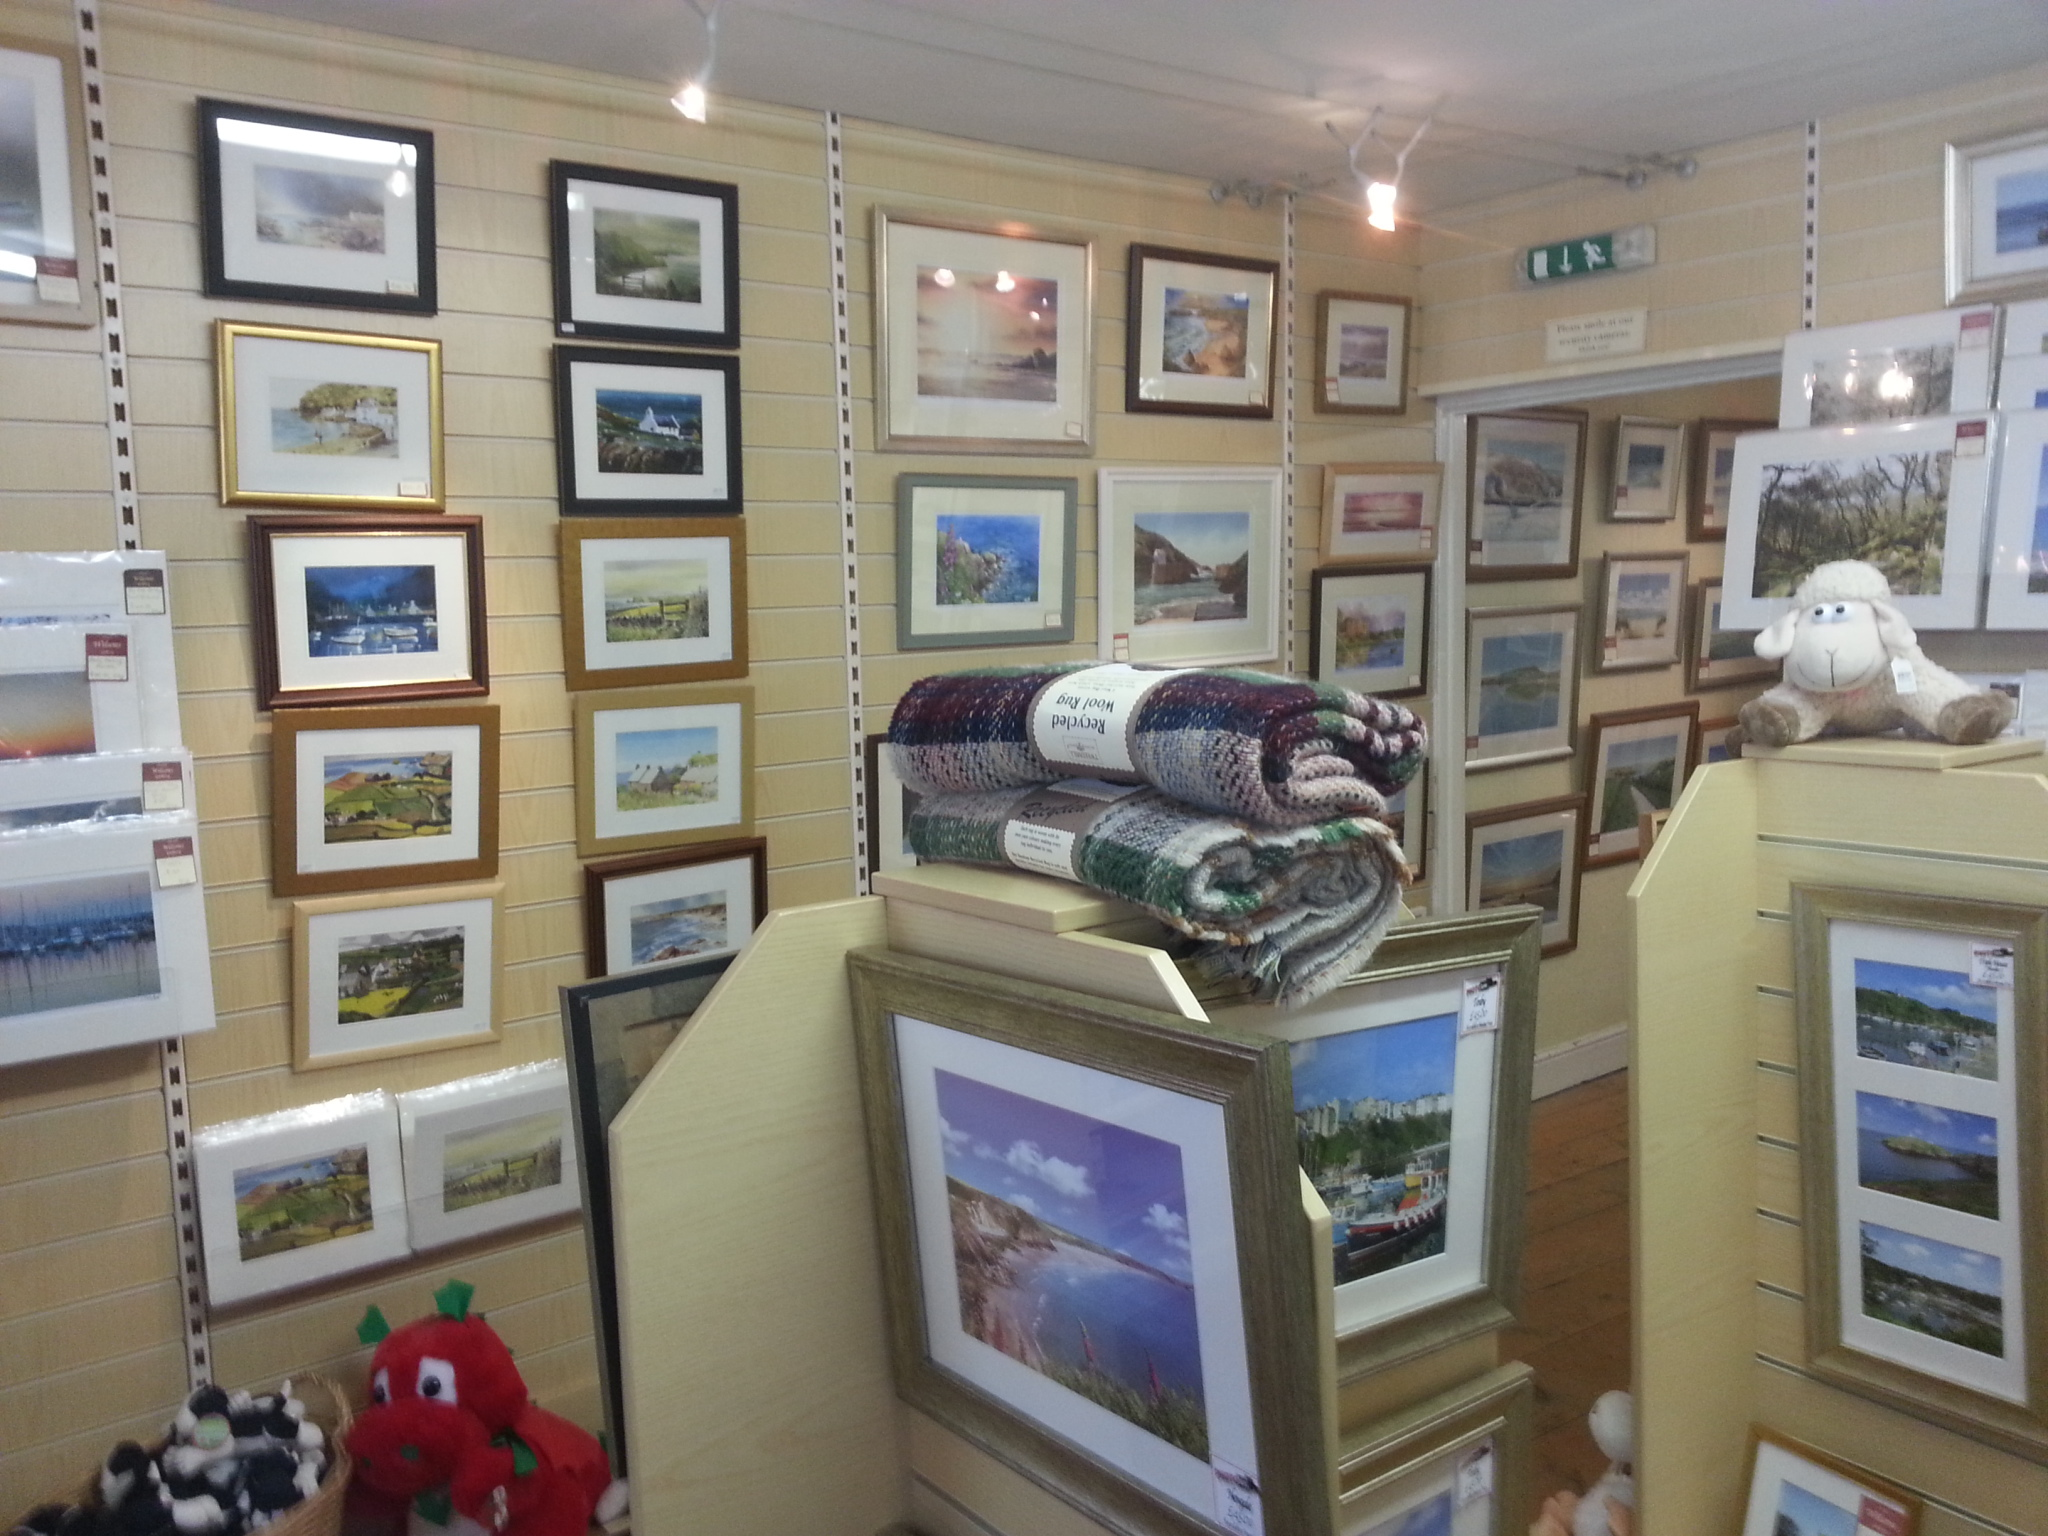 Gallery, pictures, Haverfordwest